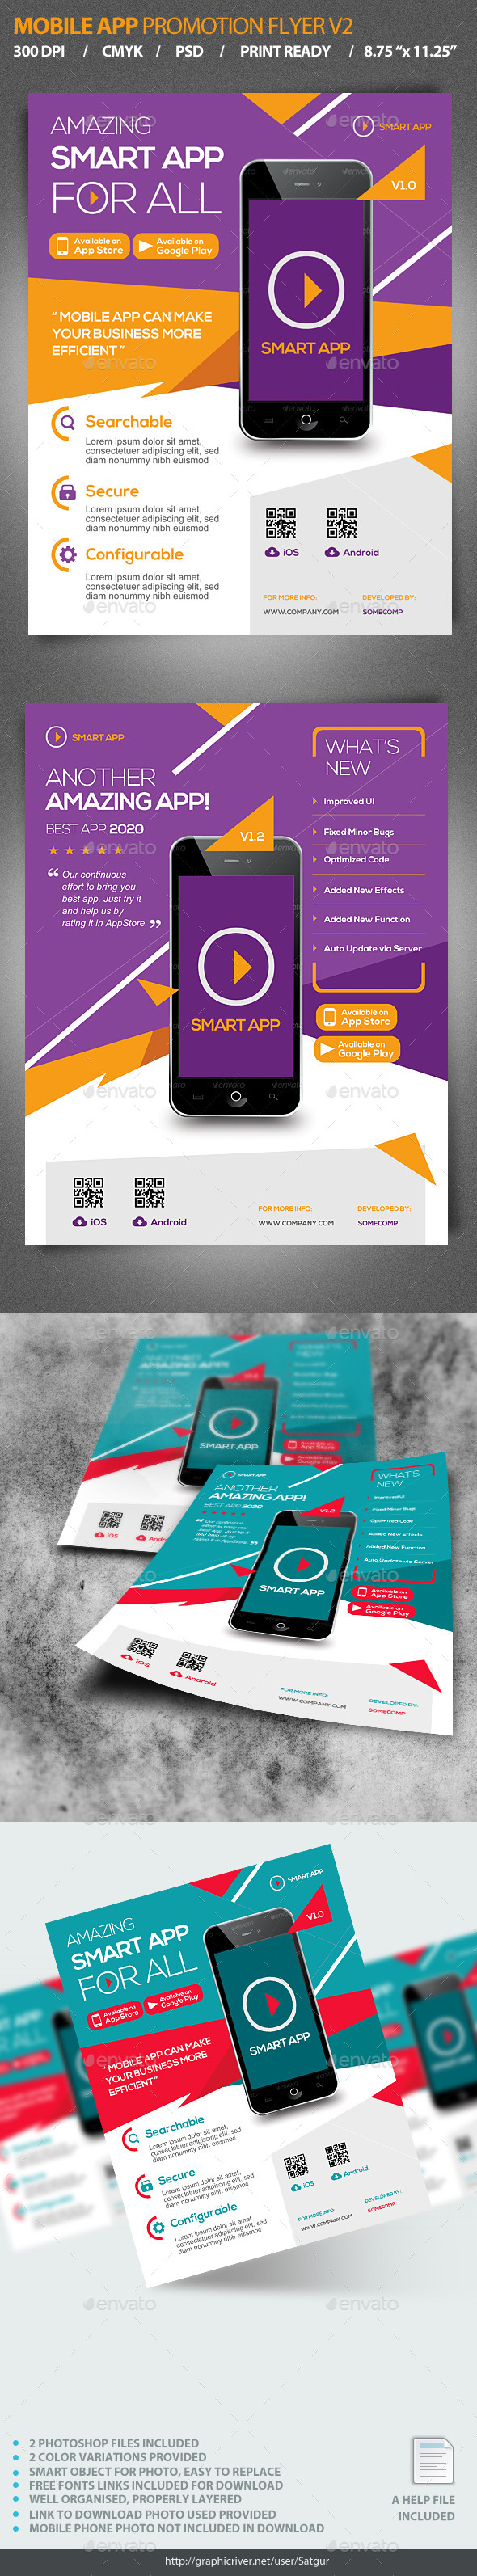 Mobile App Promotion Flyer V2